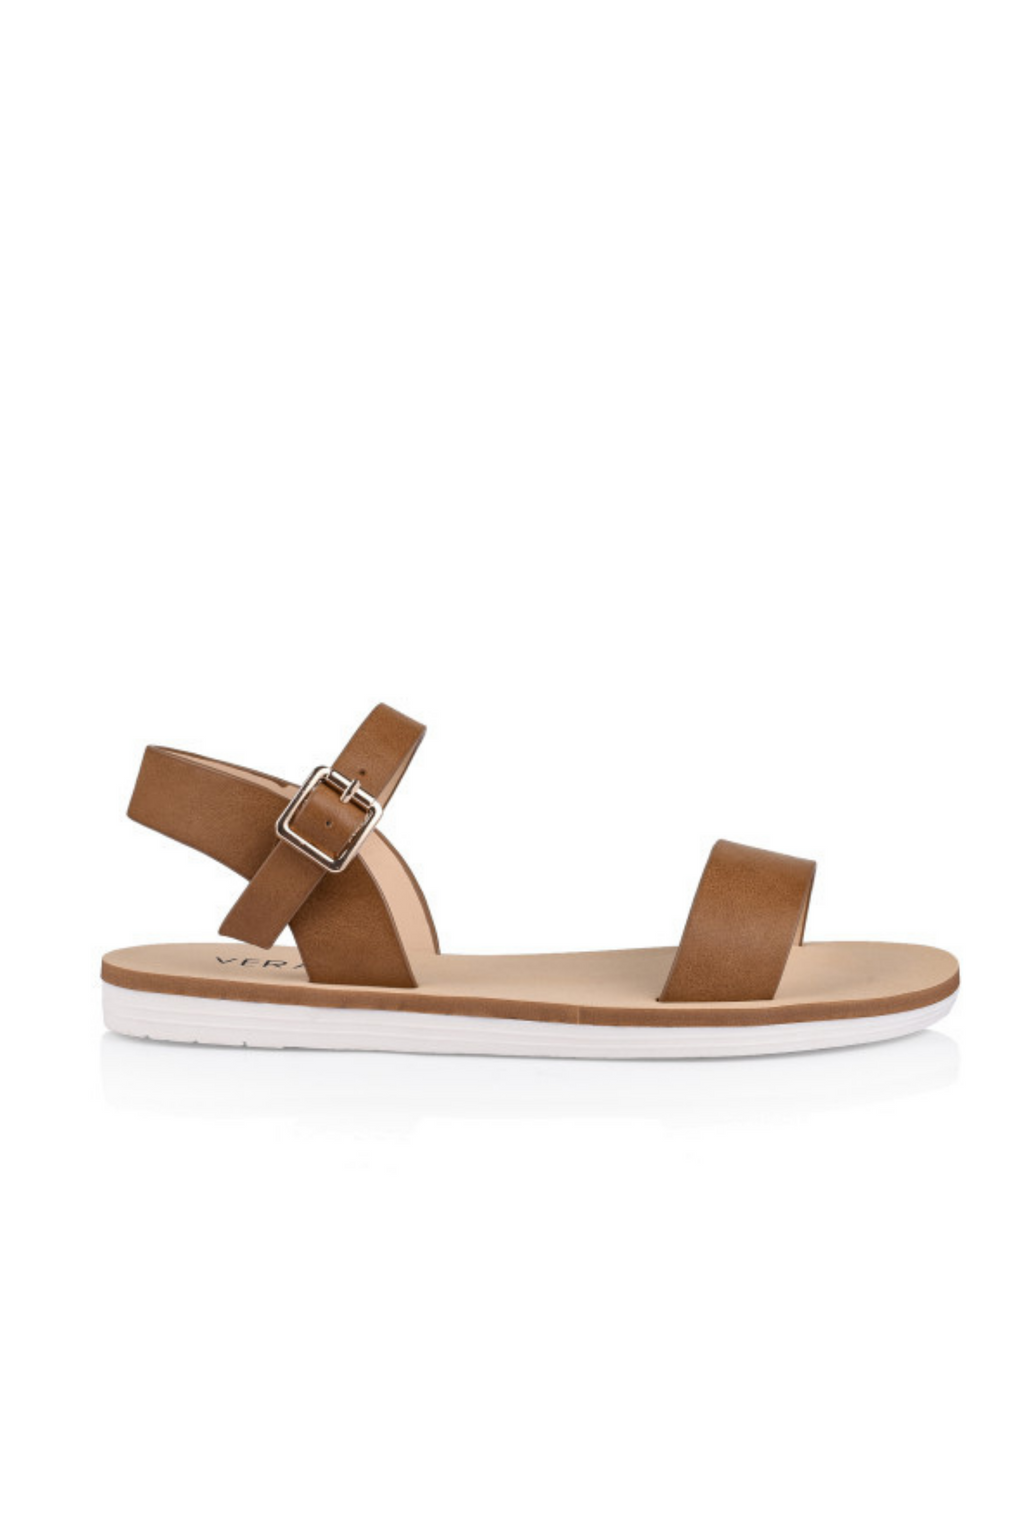 SASS SANDAL - Tan Softee